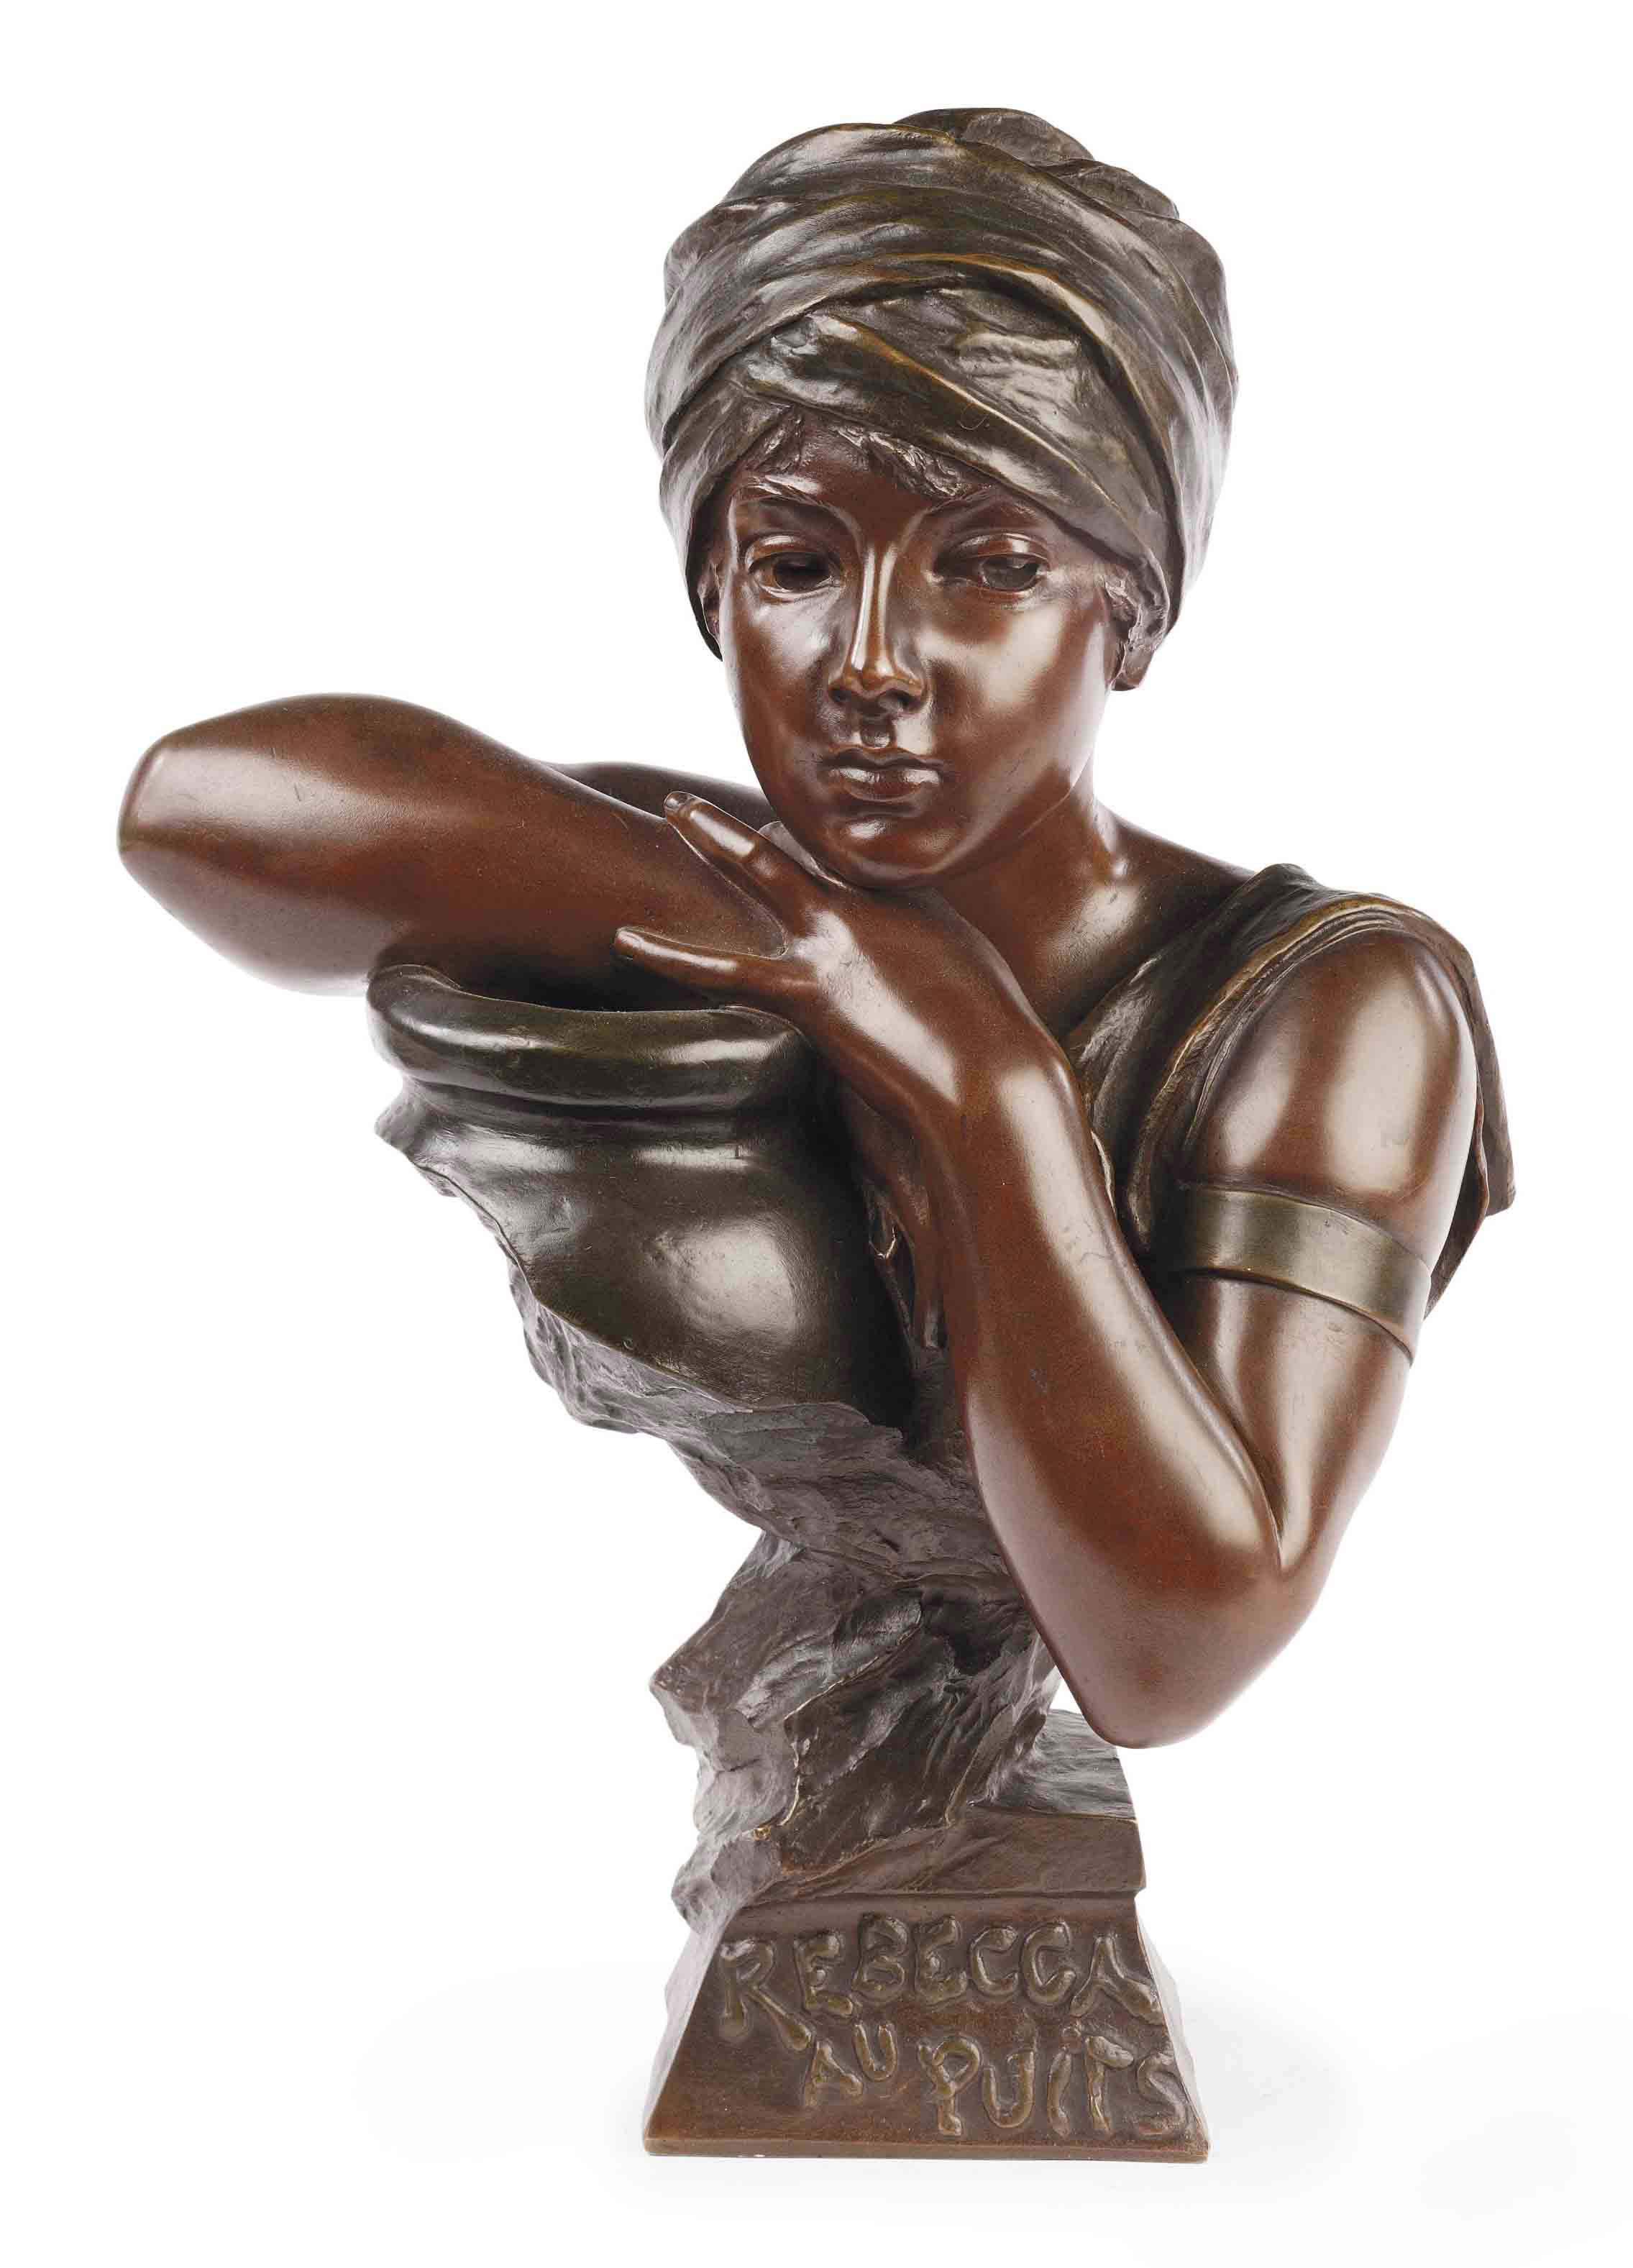 A FRENCH TWO-COLOUR PATINATED BRONZE BUST A GIRL ENTITLED 'REBECCA AU PUITS'